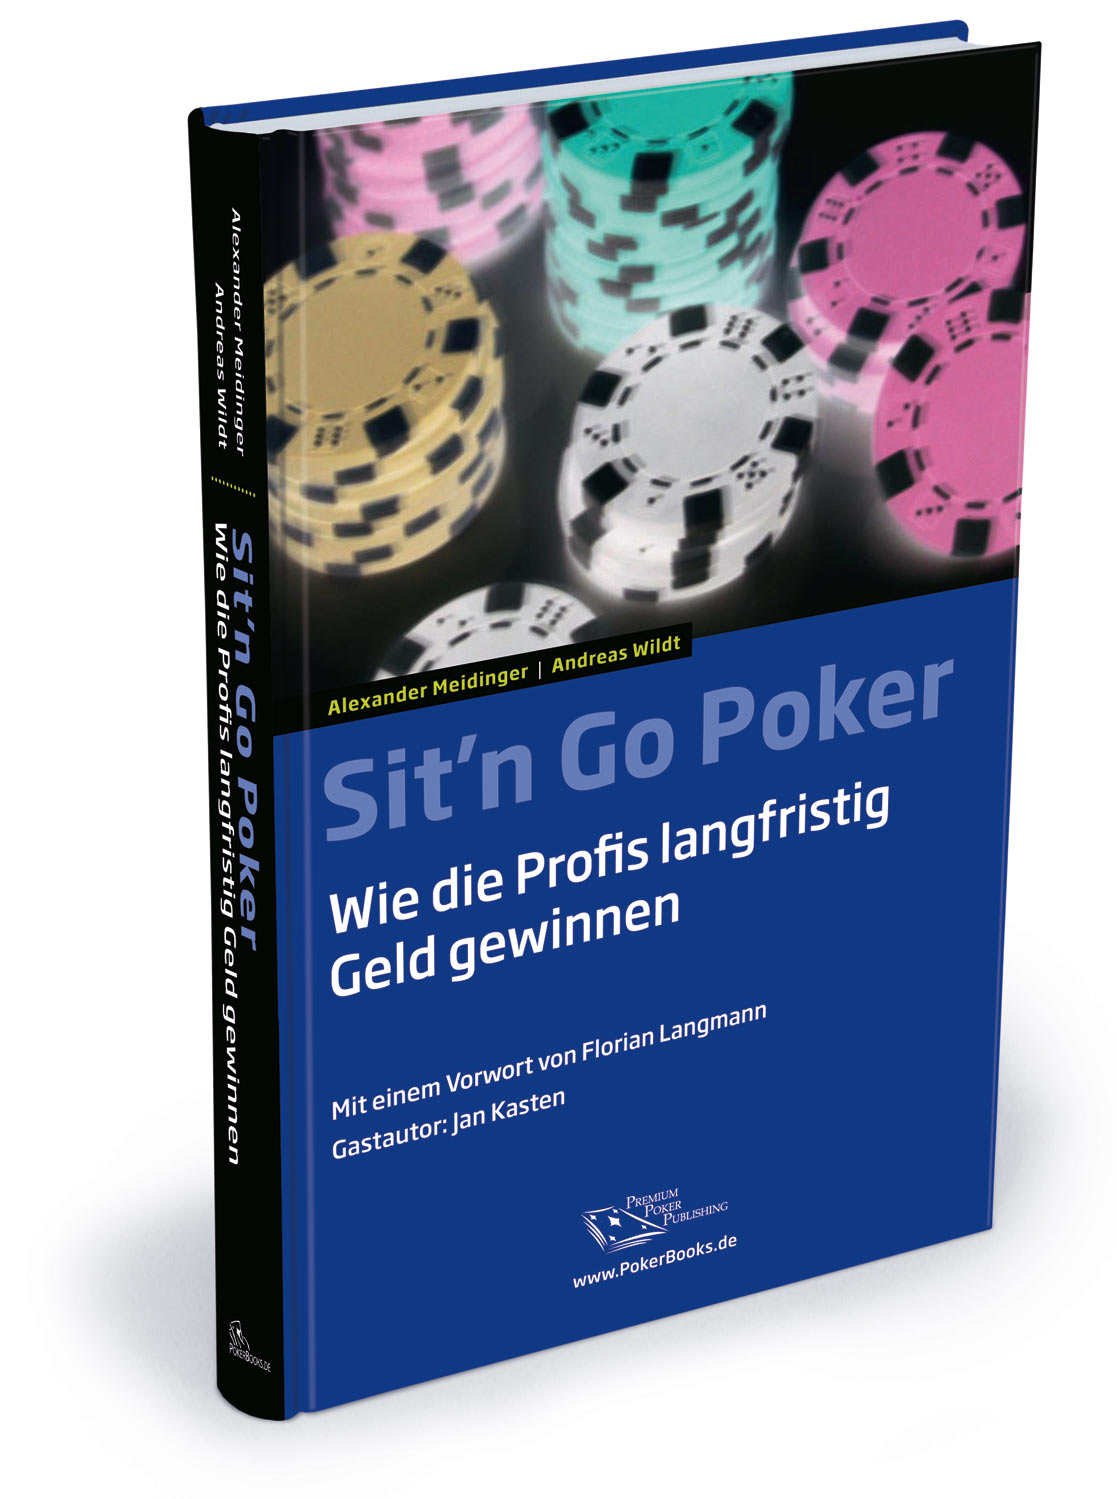 sit and go poker alex meidinger thalia